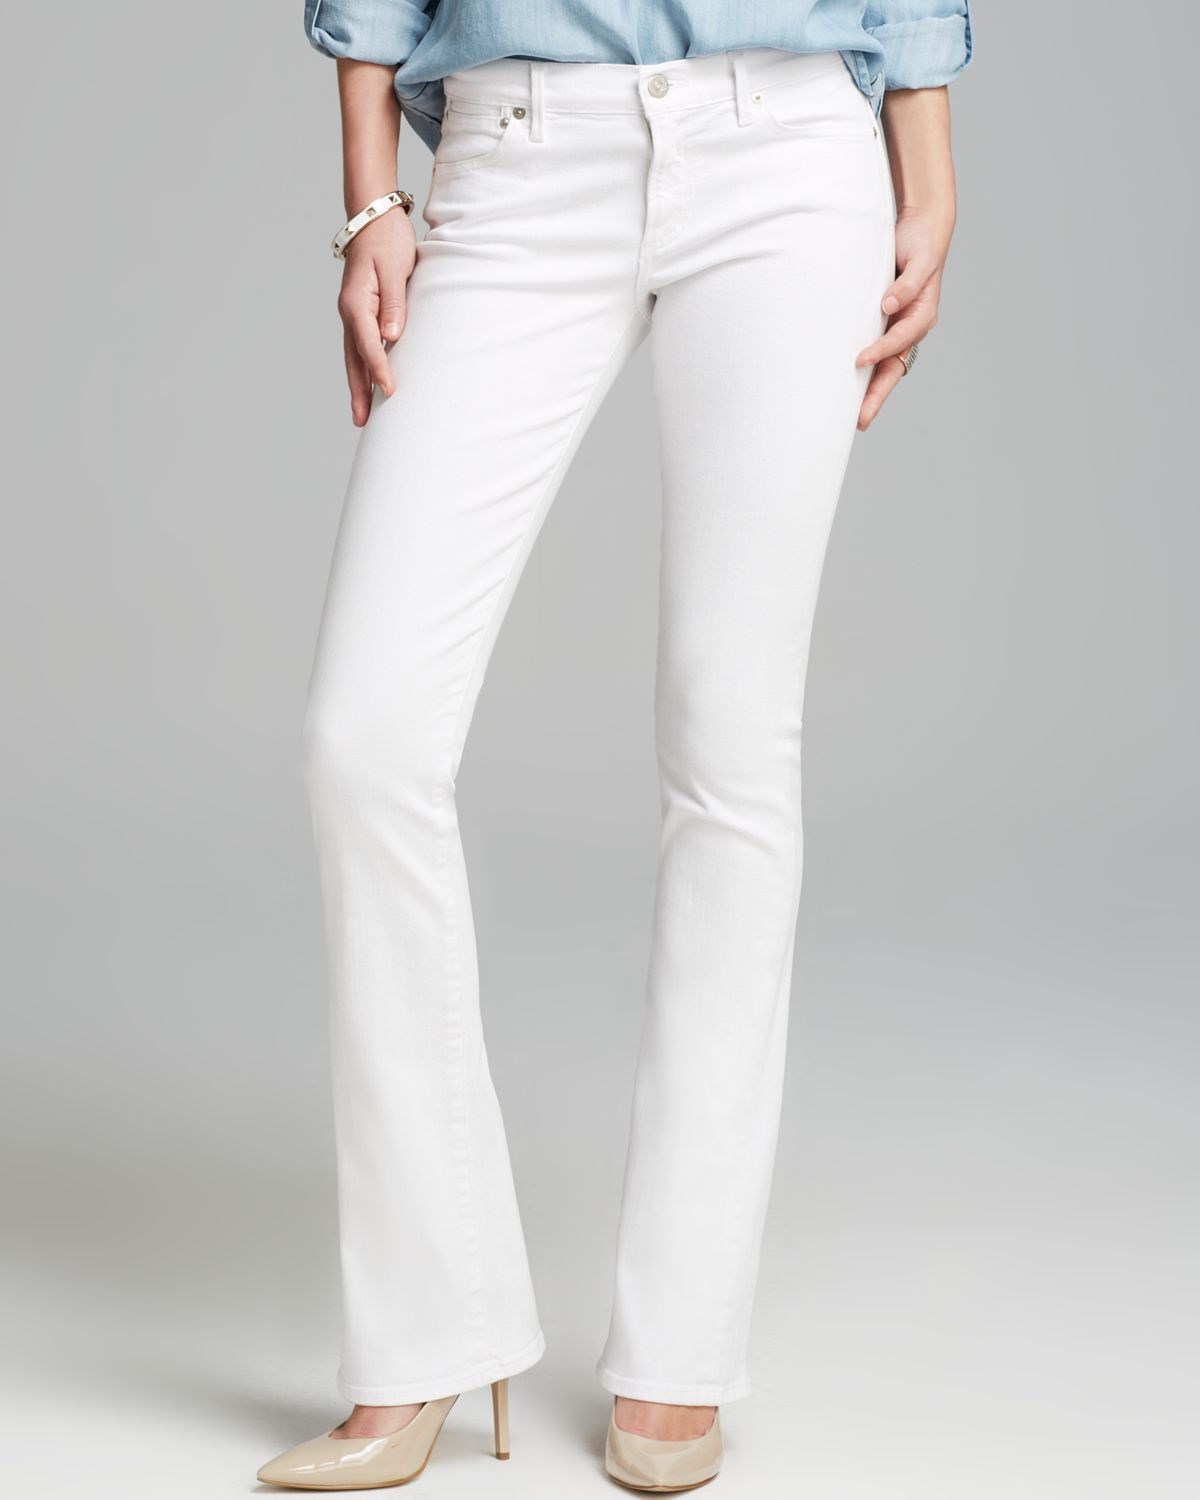 white bootleg jeans - Jean Yu Beauty